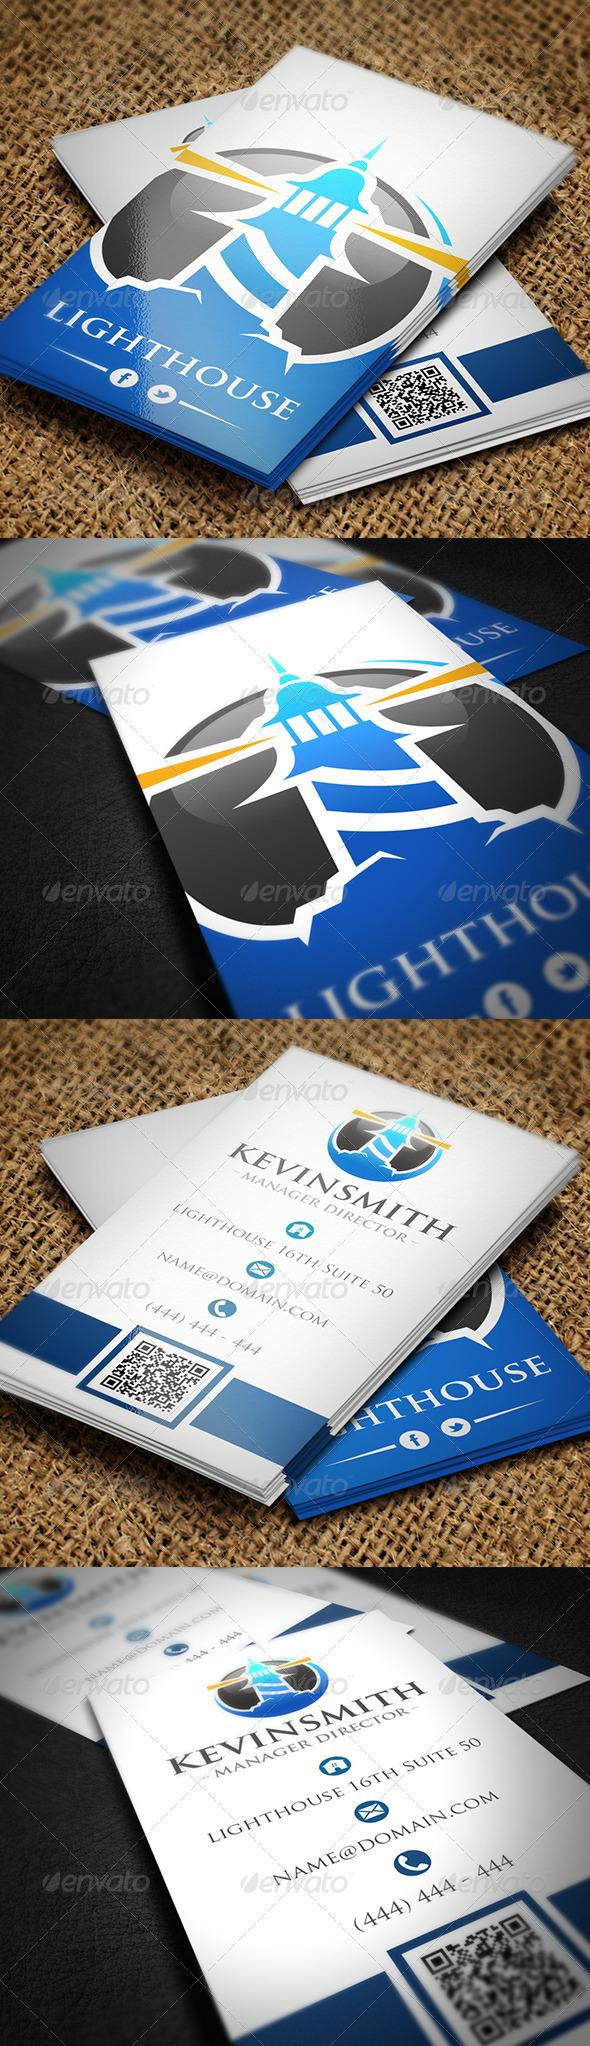 Lighthouse Business Card | Lighthouse, Business cards and Business